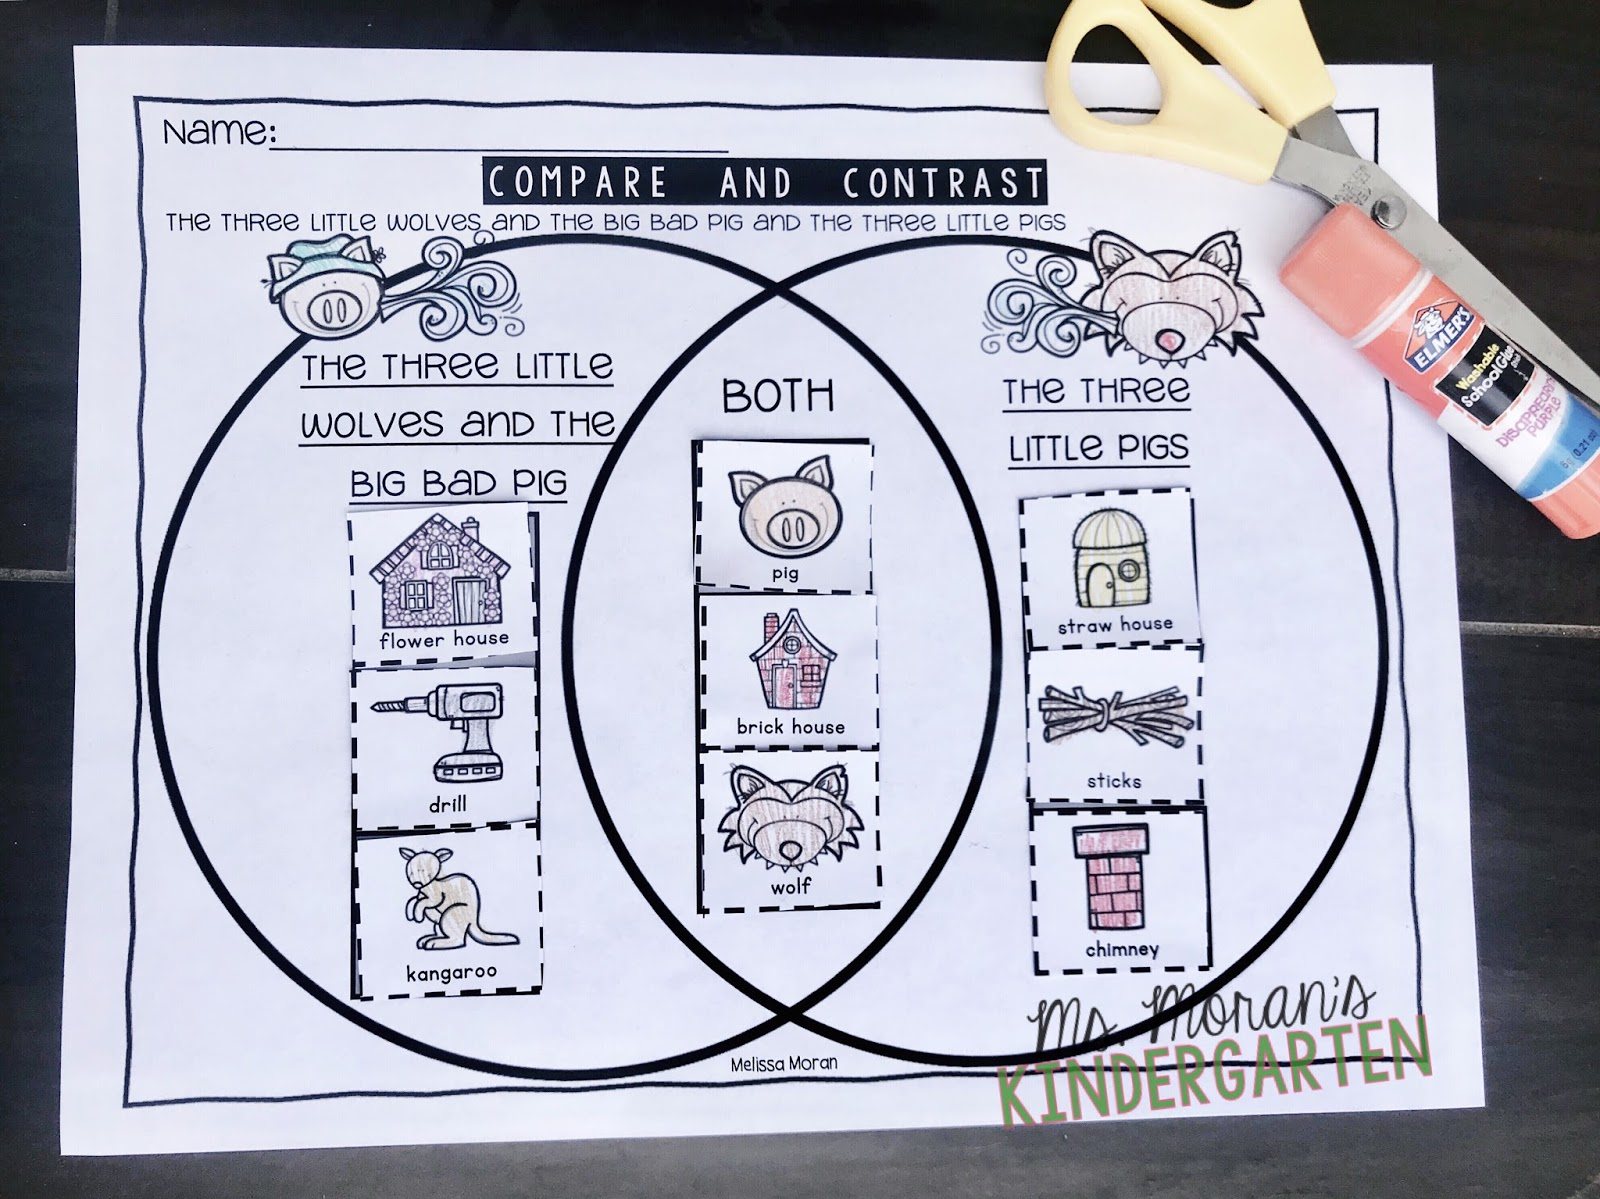 Ms Moran S Kindergarten Free Comparing And Contrasting